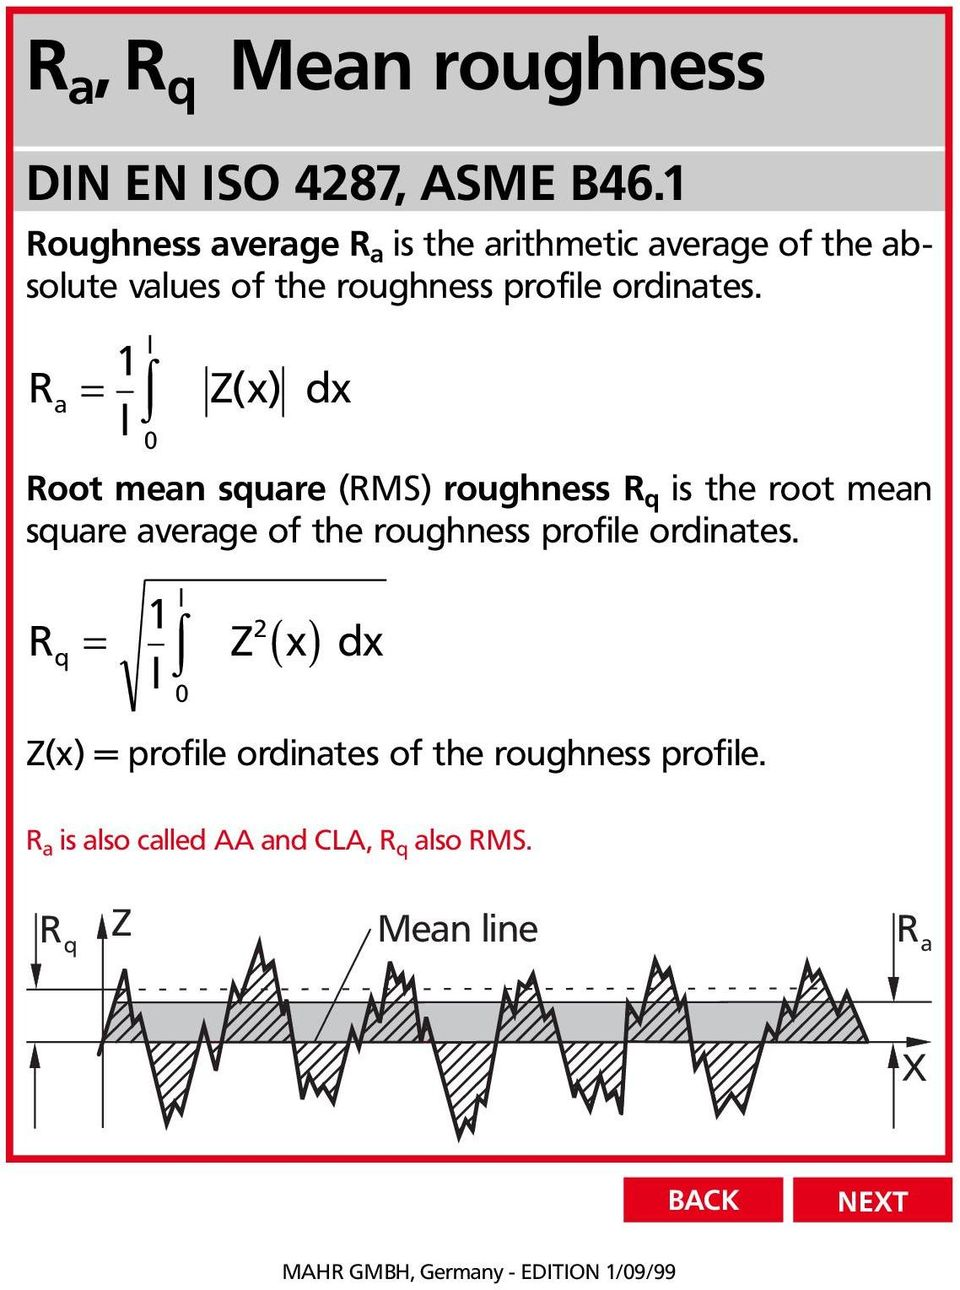 Perthometer Surface Texture Parameters New Standards Din En Iso